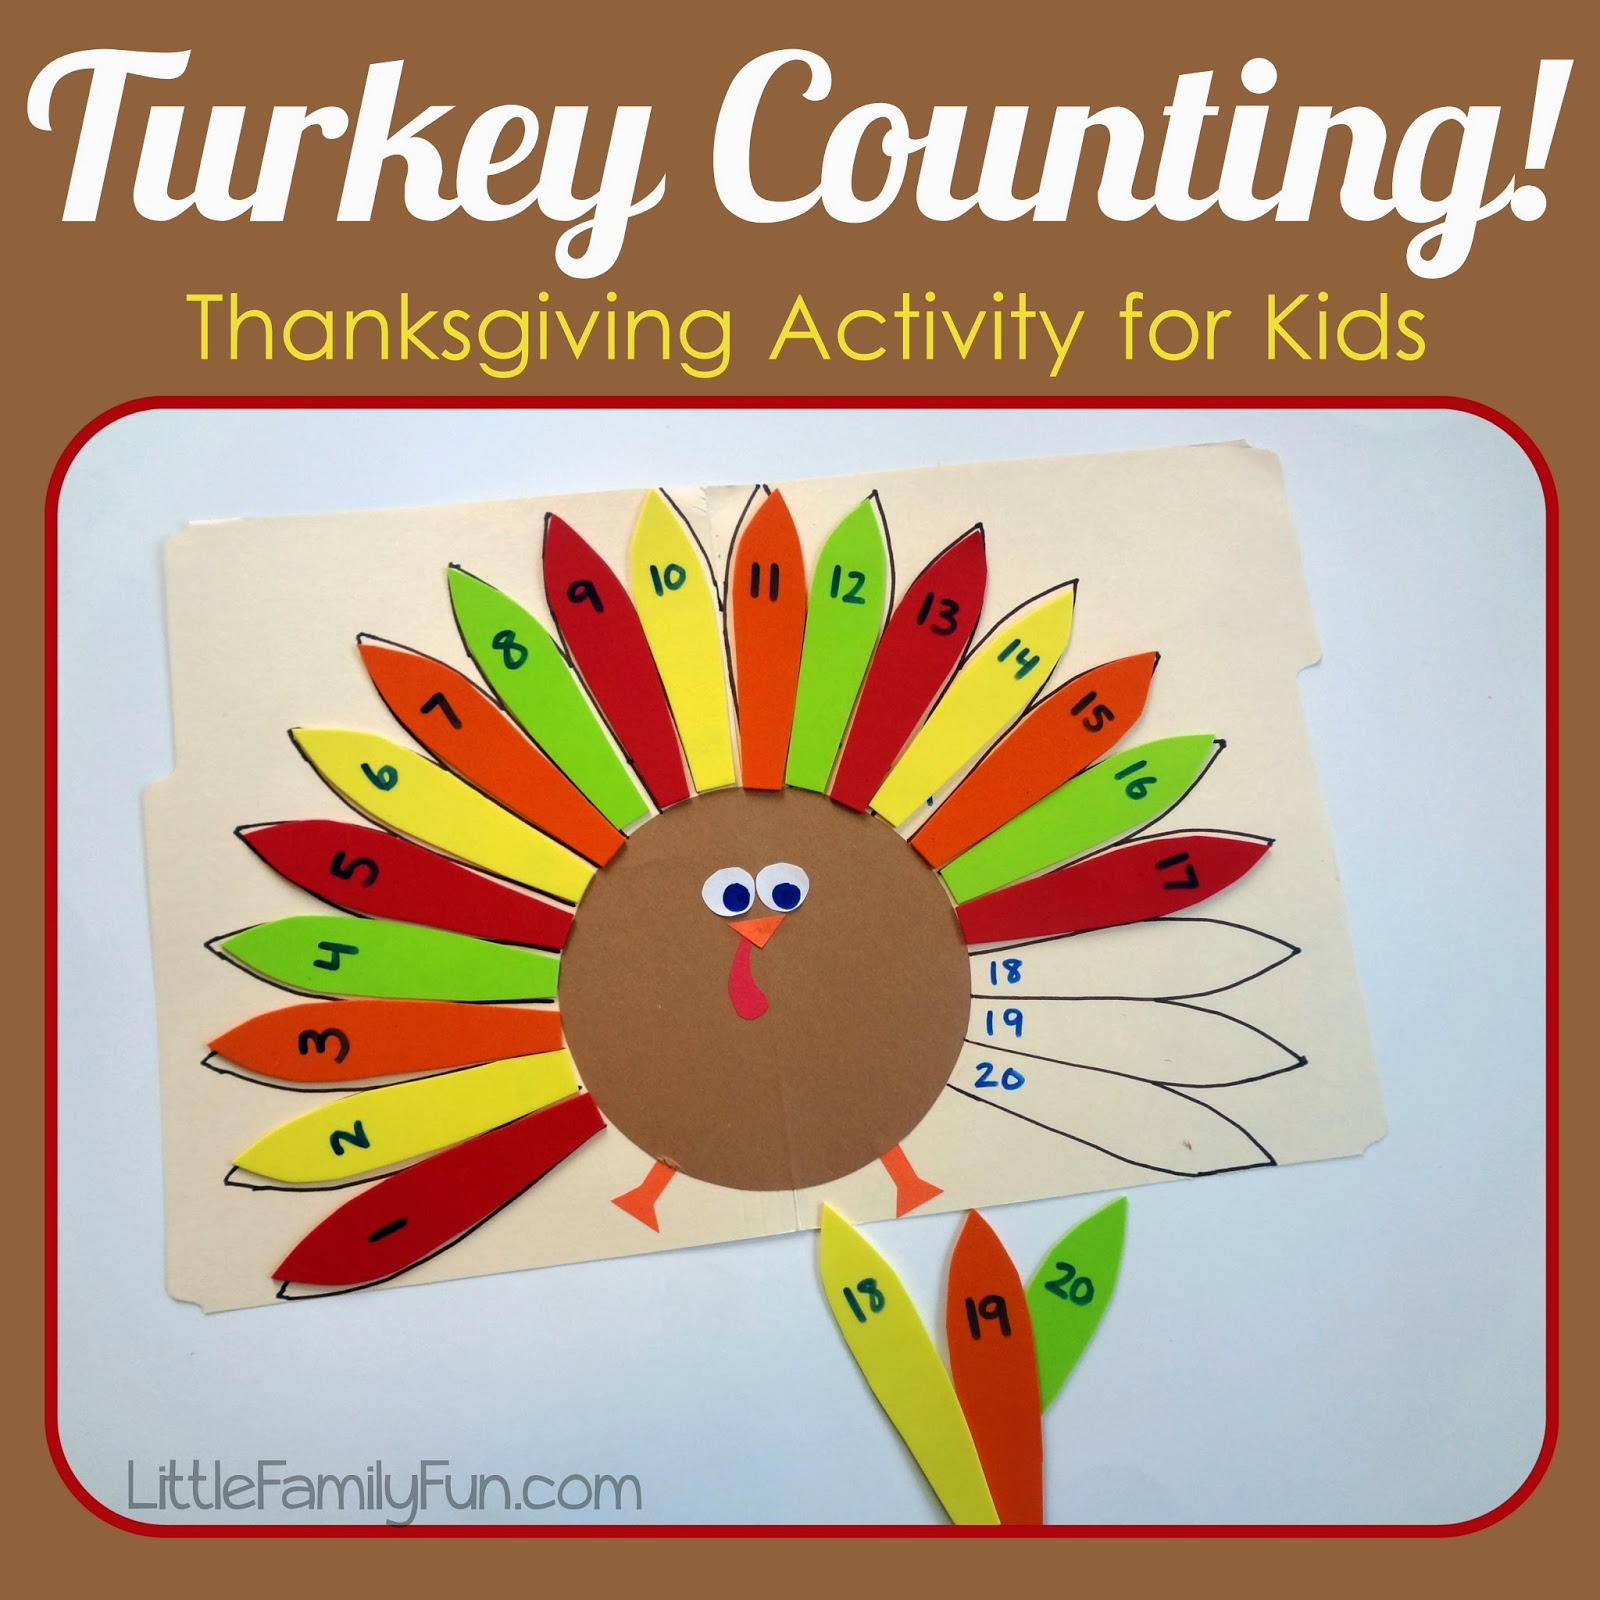 Little family fun counting turkey feathers Fun family thanksgiving games